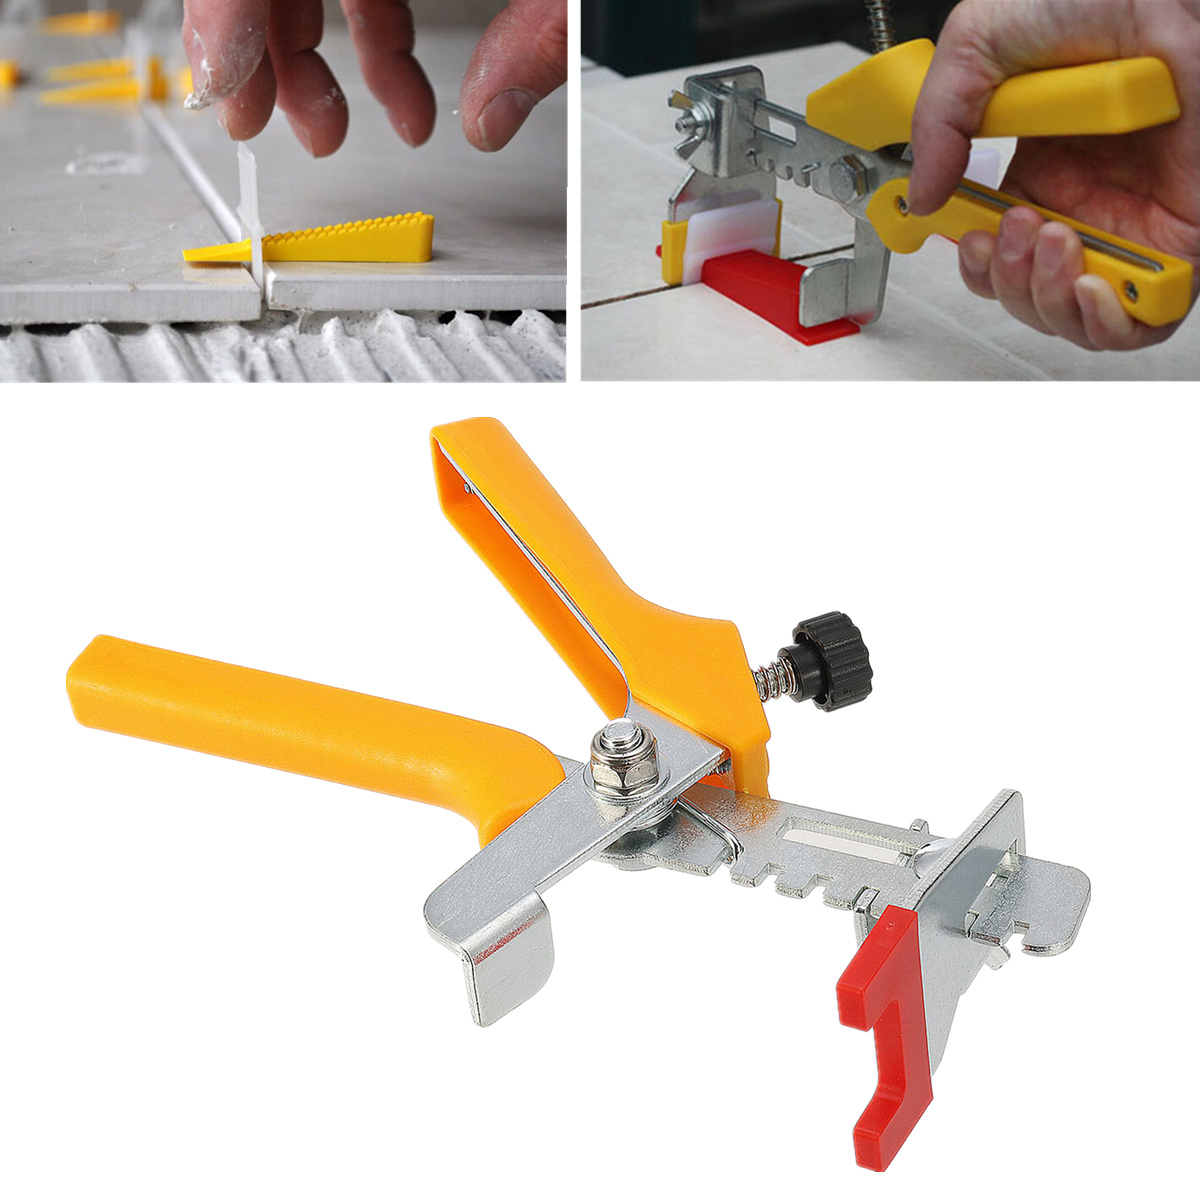 DL-D03F Floor Pliers Tool For Ceramic Tile Leveling System Tiling Installation fit Wedges and Clips